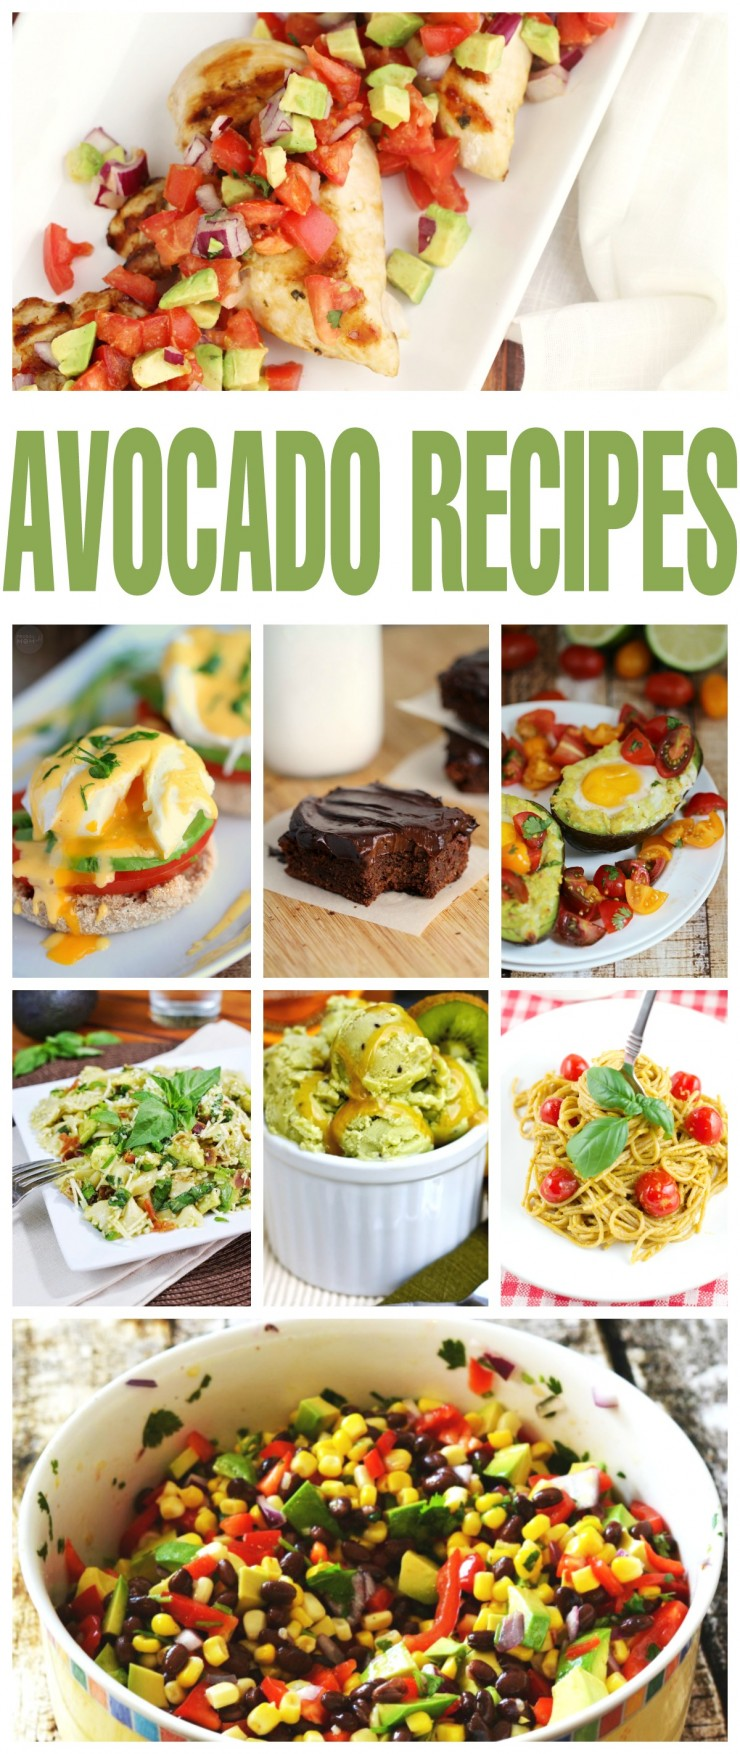 Check out these unforgettable 30+ Unusually Good Avocado Recipes. Ever tried an Avocado milkshake or a fudgy avocado dessert? These are recipes for Avocado lovers!